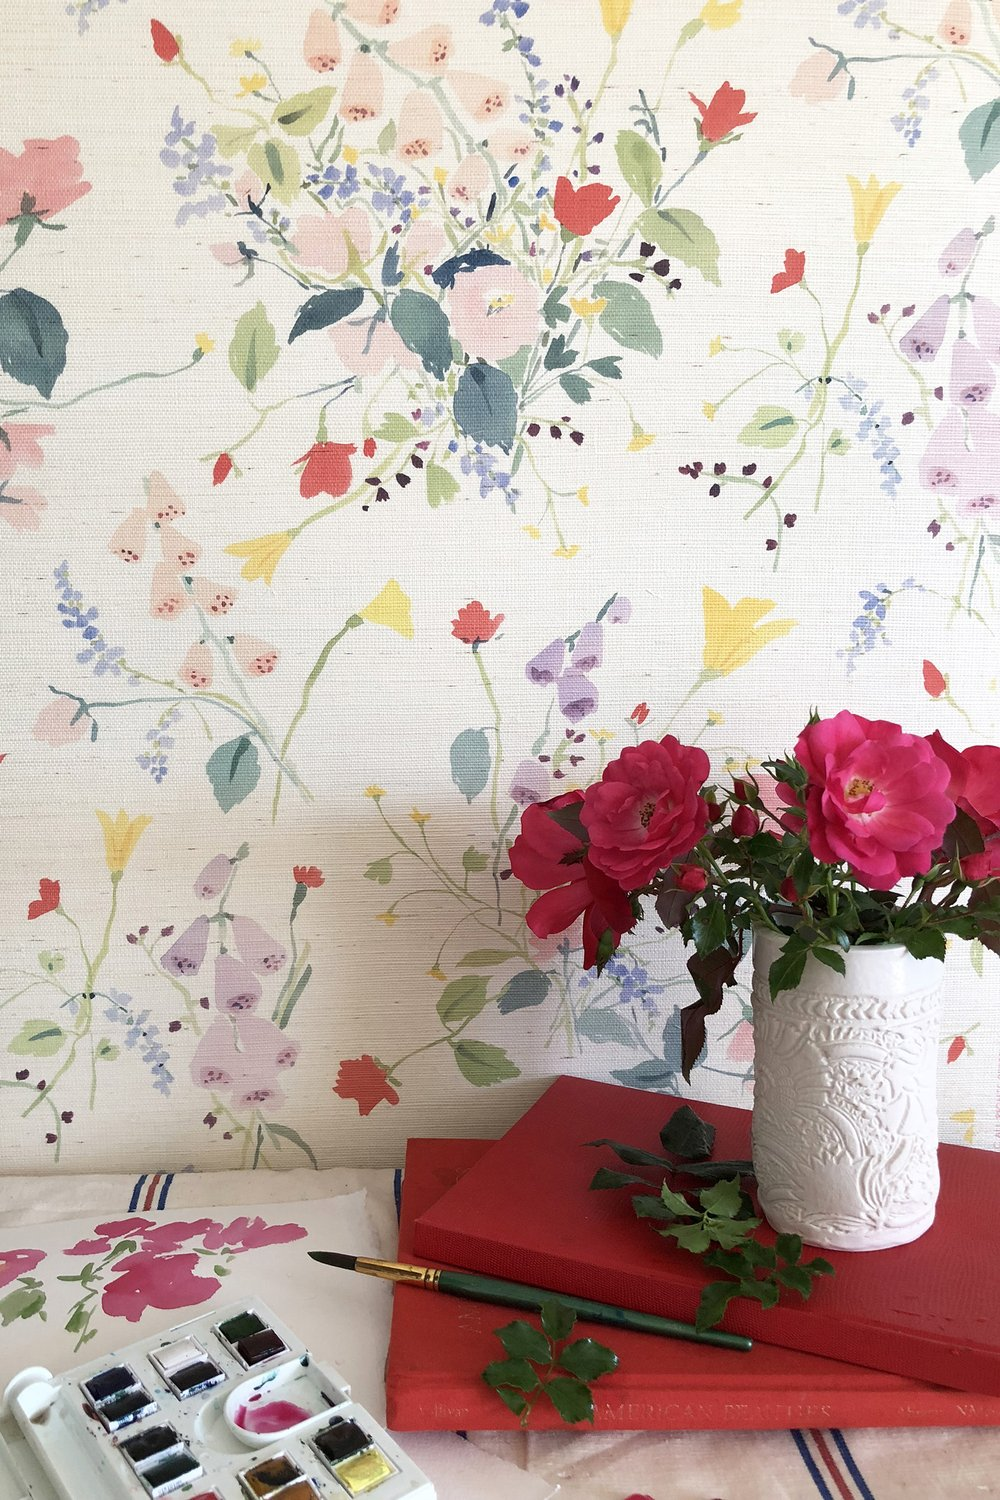 Spring florals that we're dying to paper a powder room in!